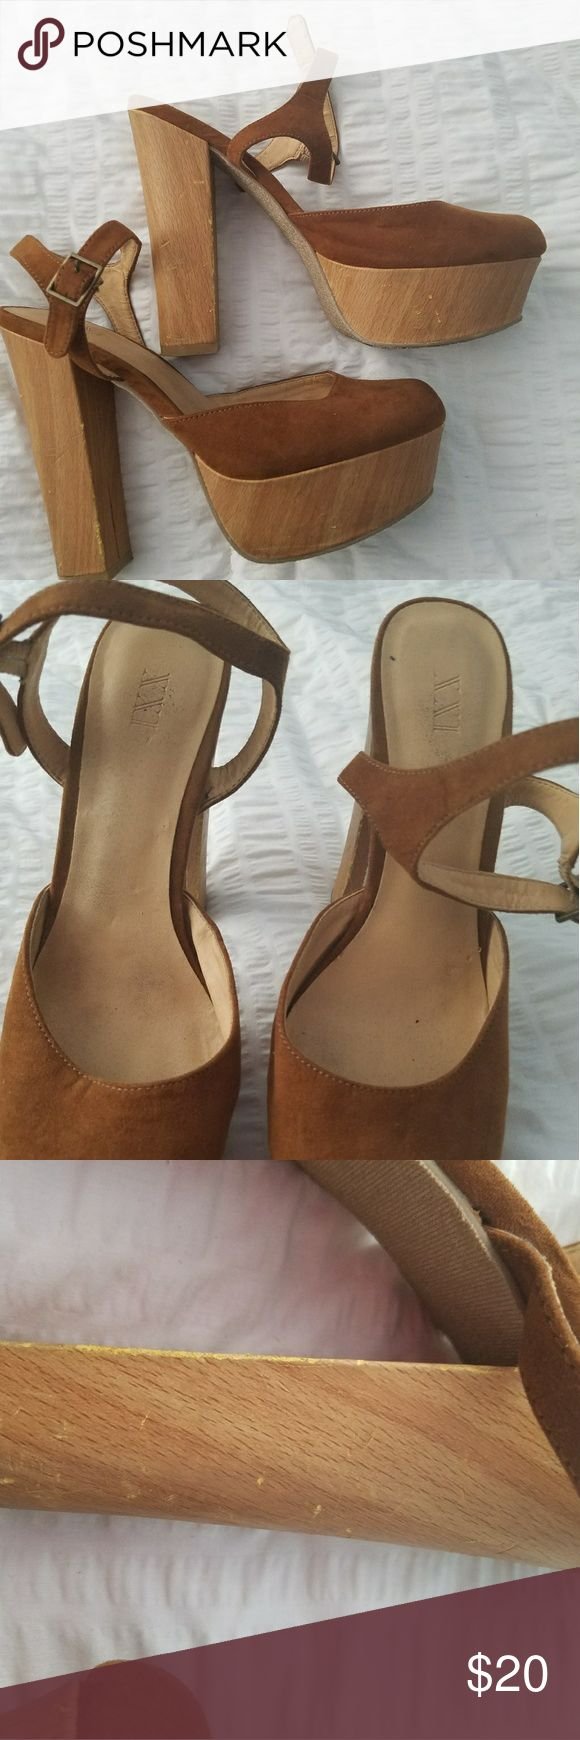 """Brown Suede Platform Wedge High Heel Shoes Suede like platform high heels are in good preloved condition  There are scuffs on the wooden heel and wedge area. They are not bad at all.   5.5"""" heel  1.75"""" wedge area XXI  Shoes Platforms"""